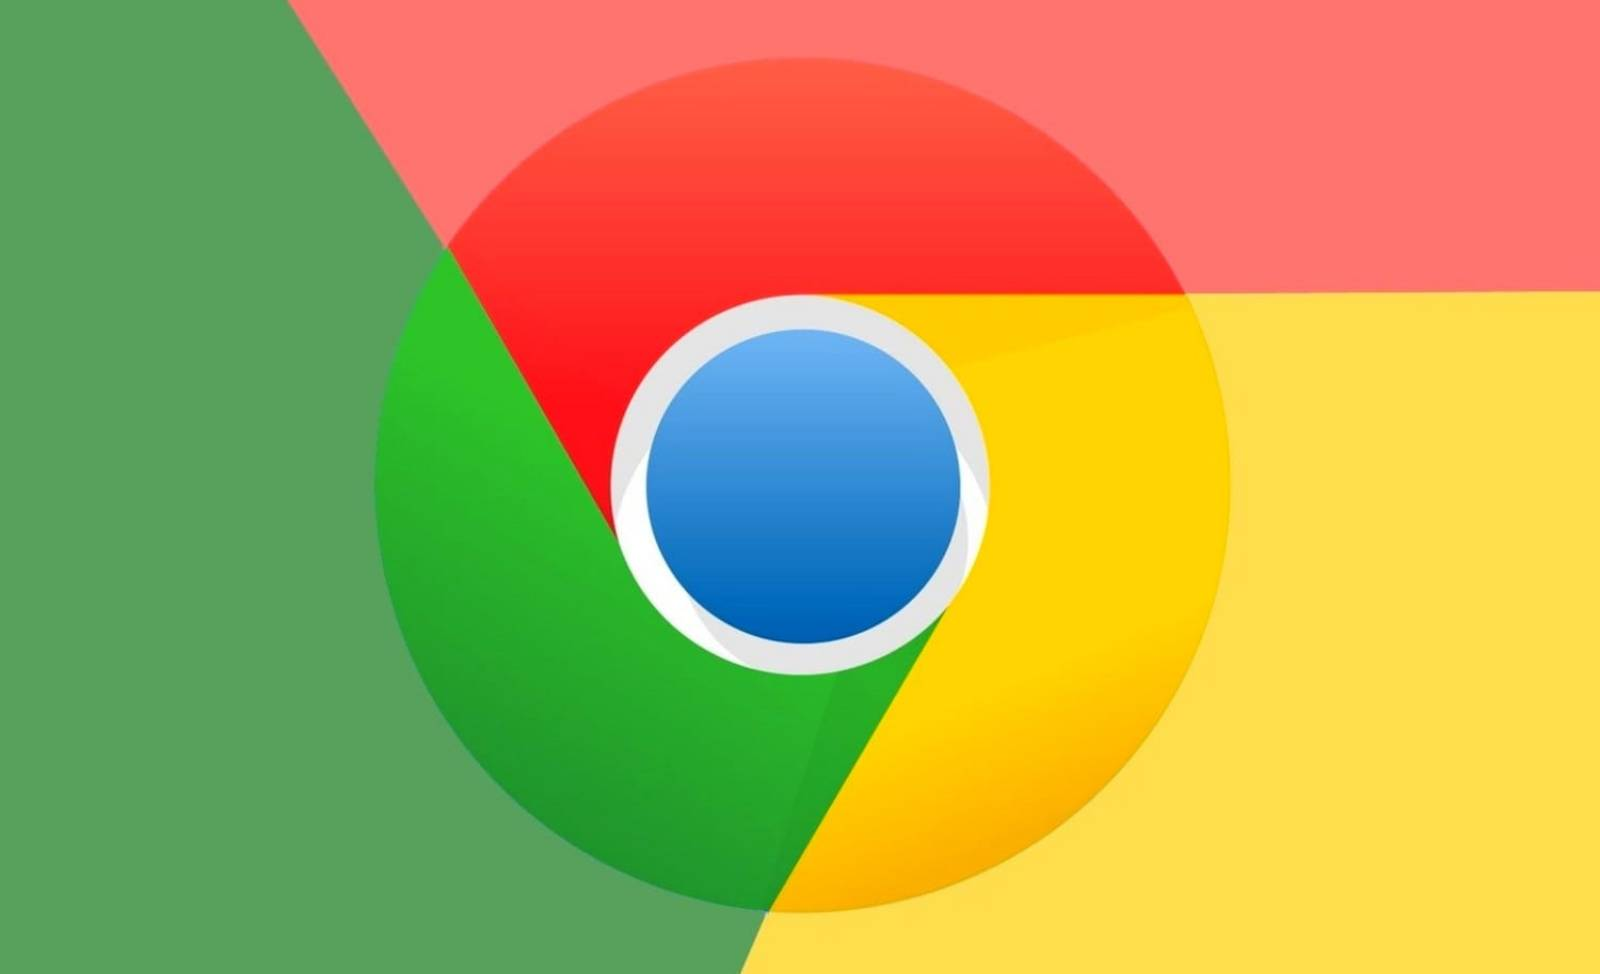 Google Chrome media